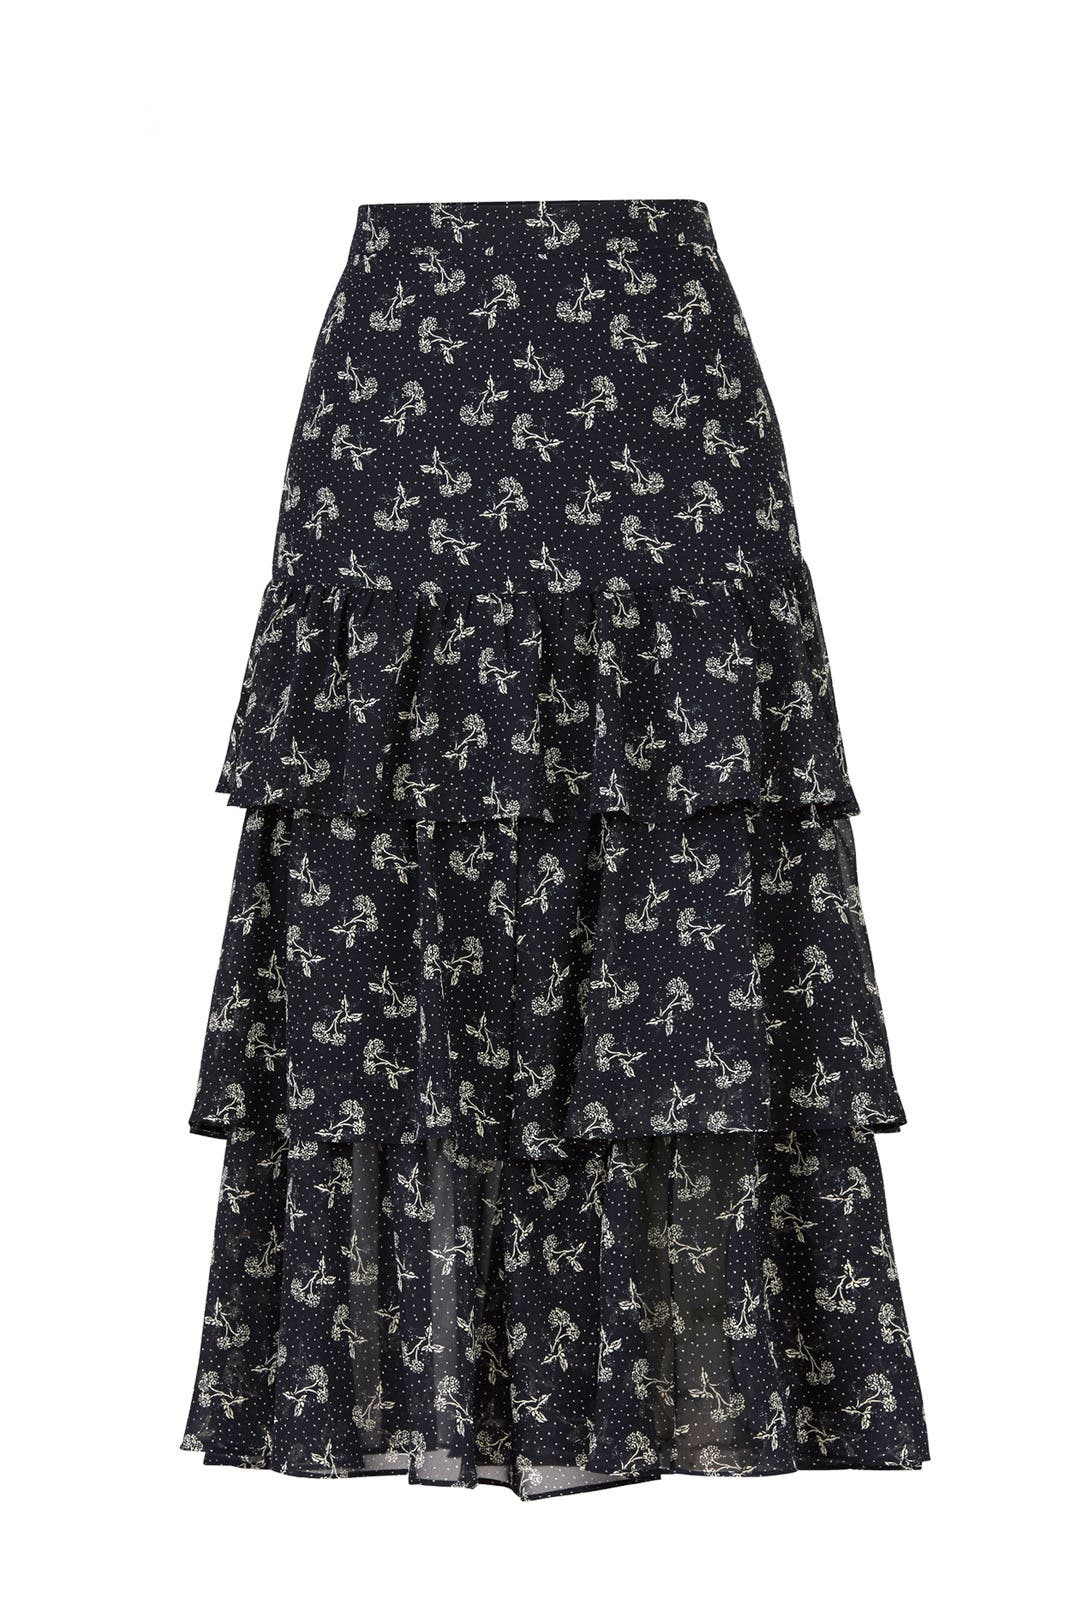 b6257e4d7a5 Bloom Frilled Skirt by The Kooples for $40 | Rent the Runway